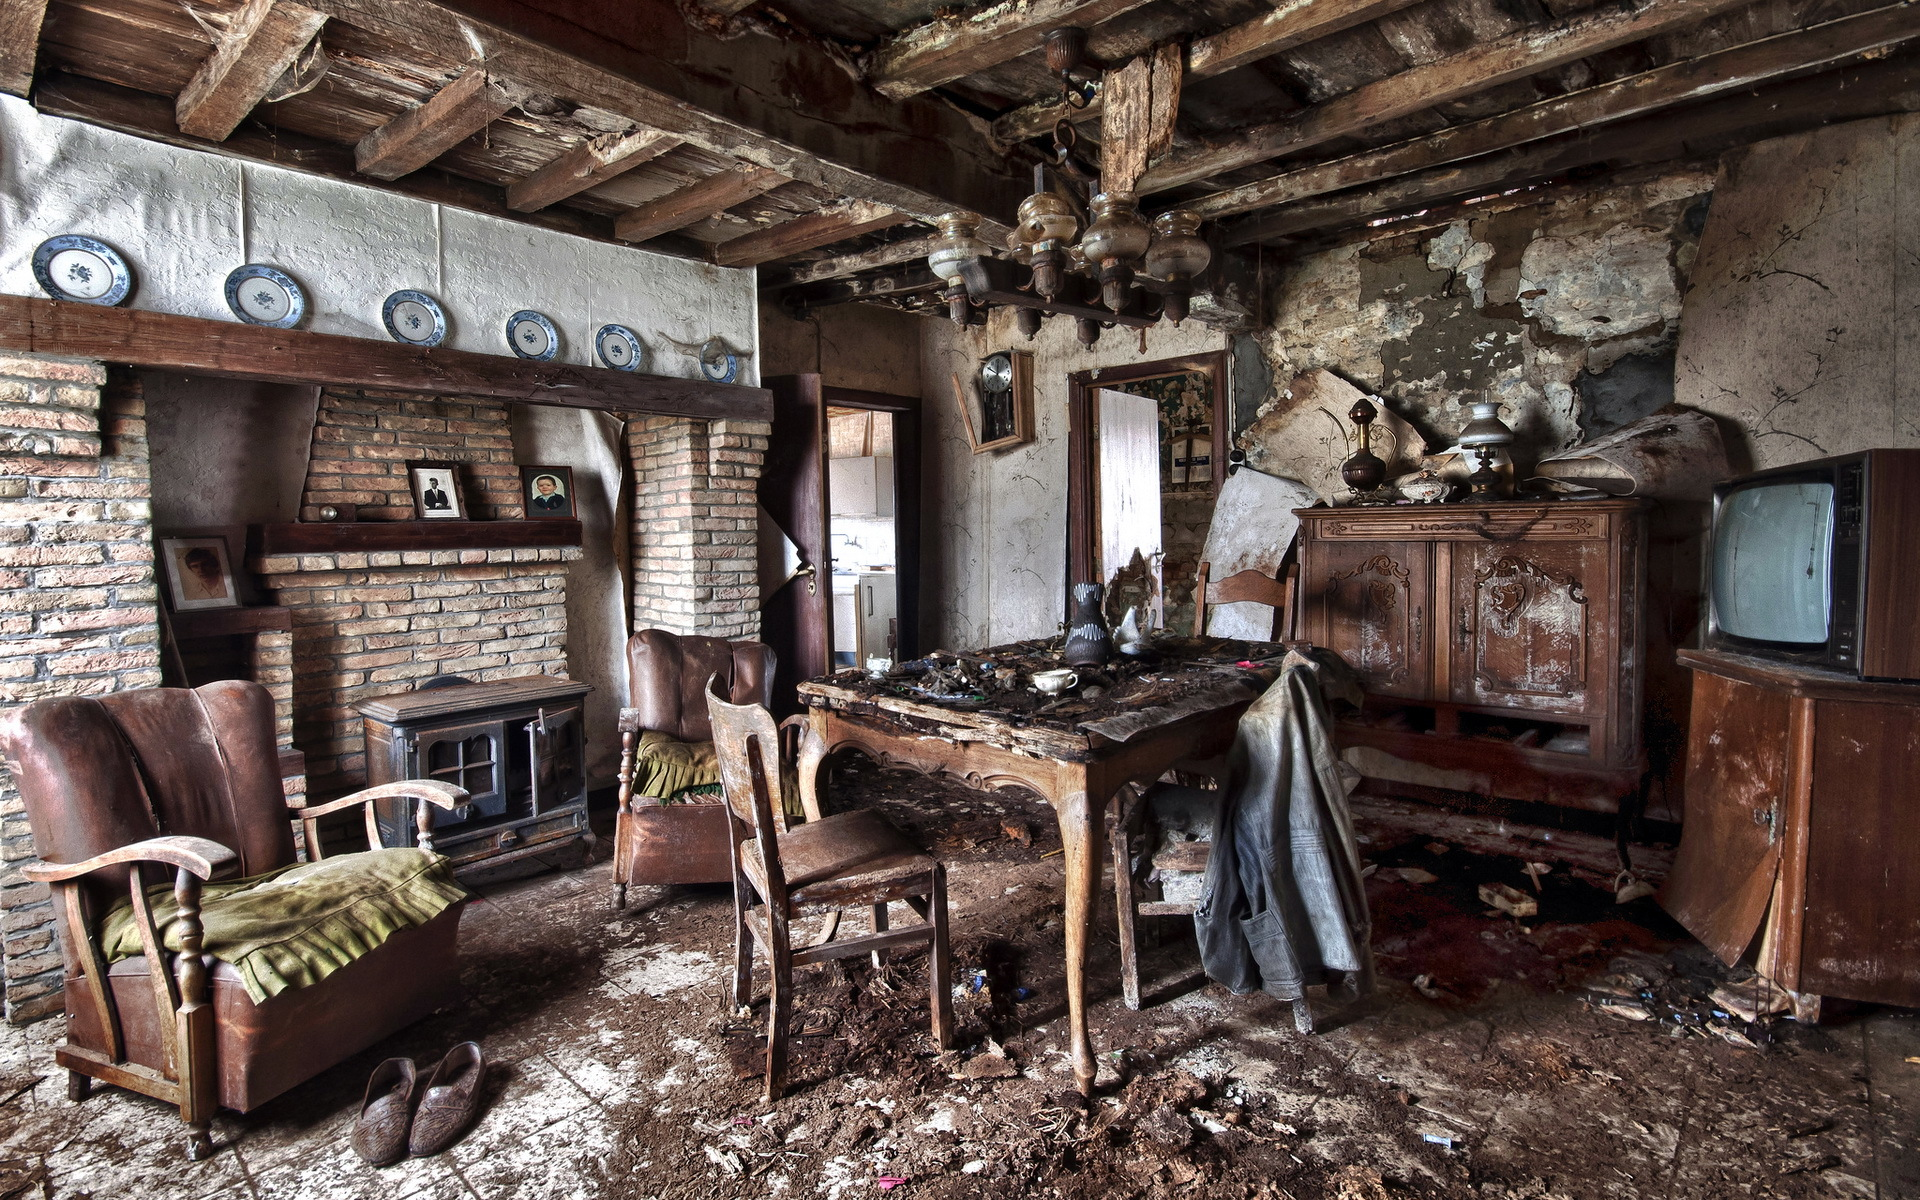 Interior Old Table Armchair Room design ruins apocalyptic      f